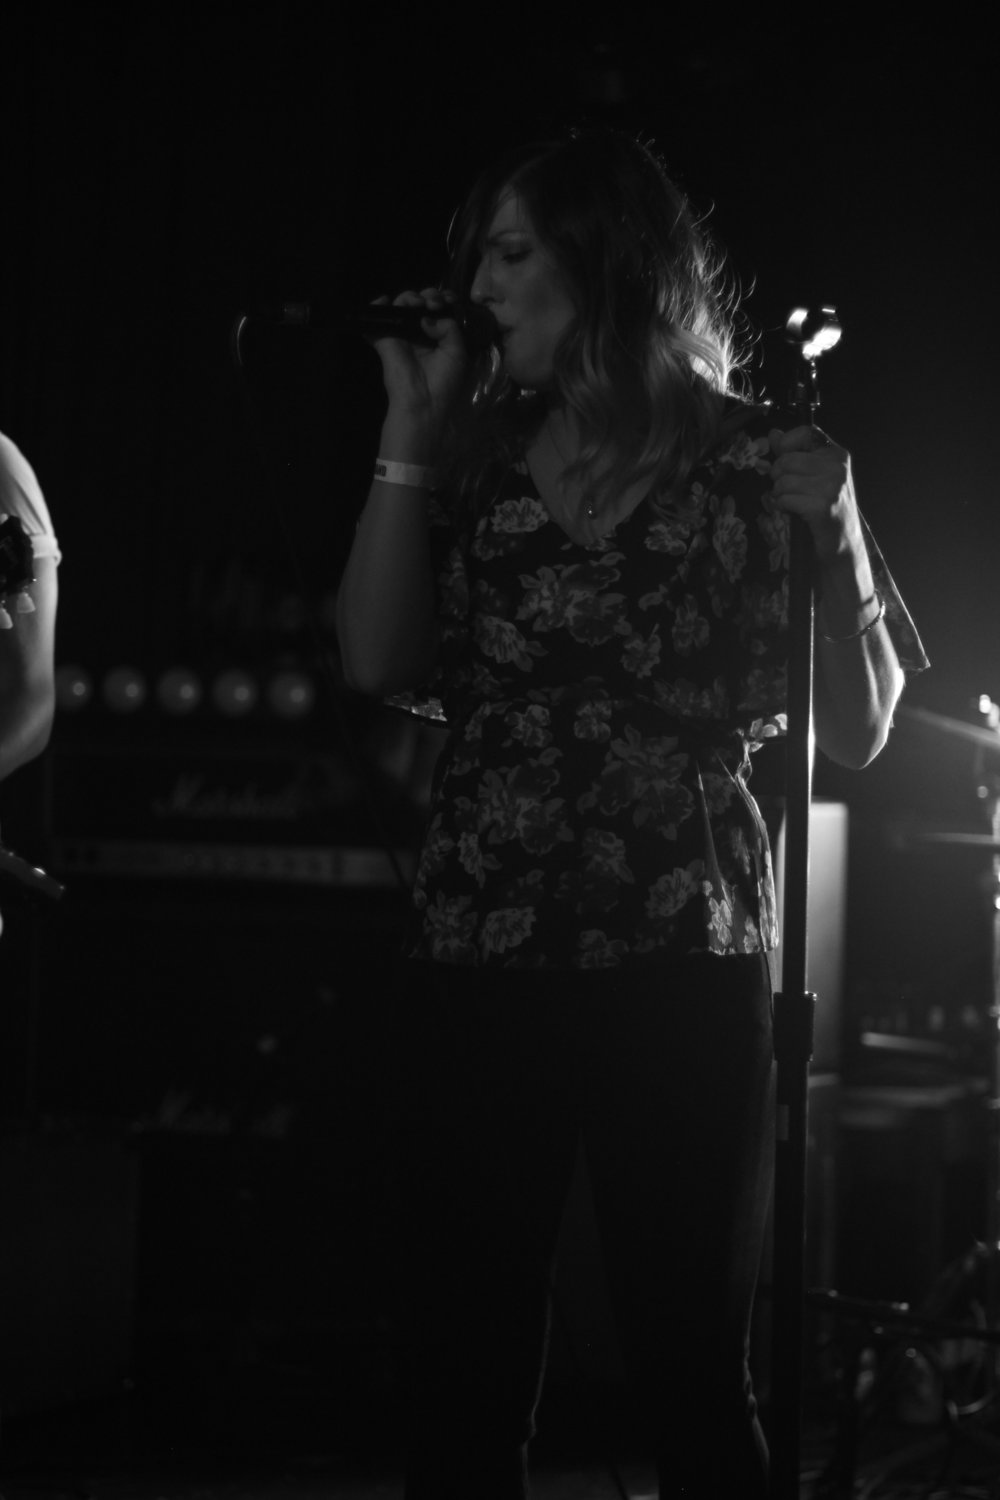 Cortney Kirby on vocals at Arlene's Grocery. Photo courtesy of Kevin Vallejos.